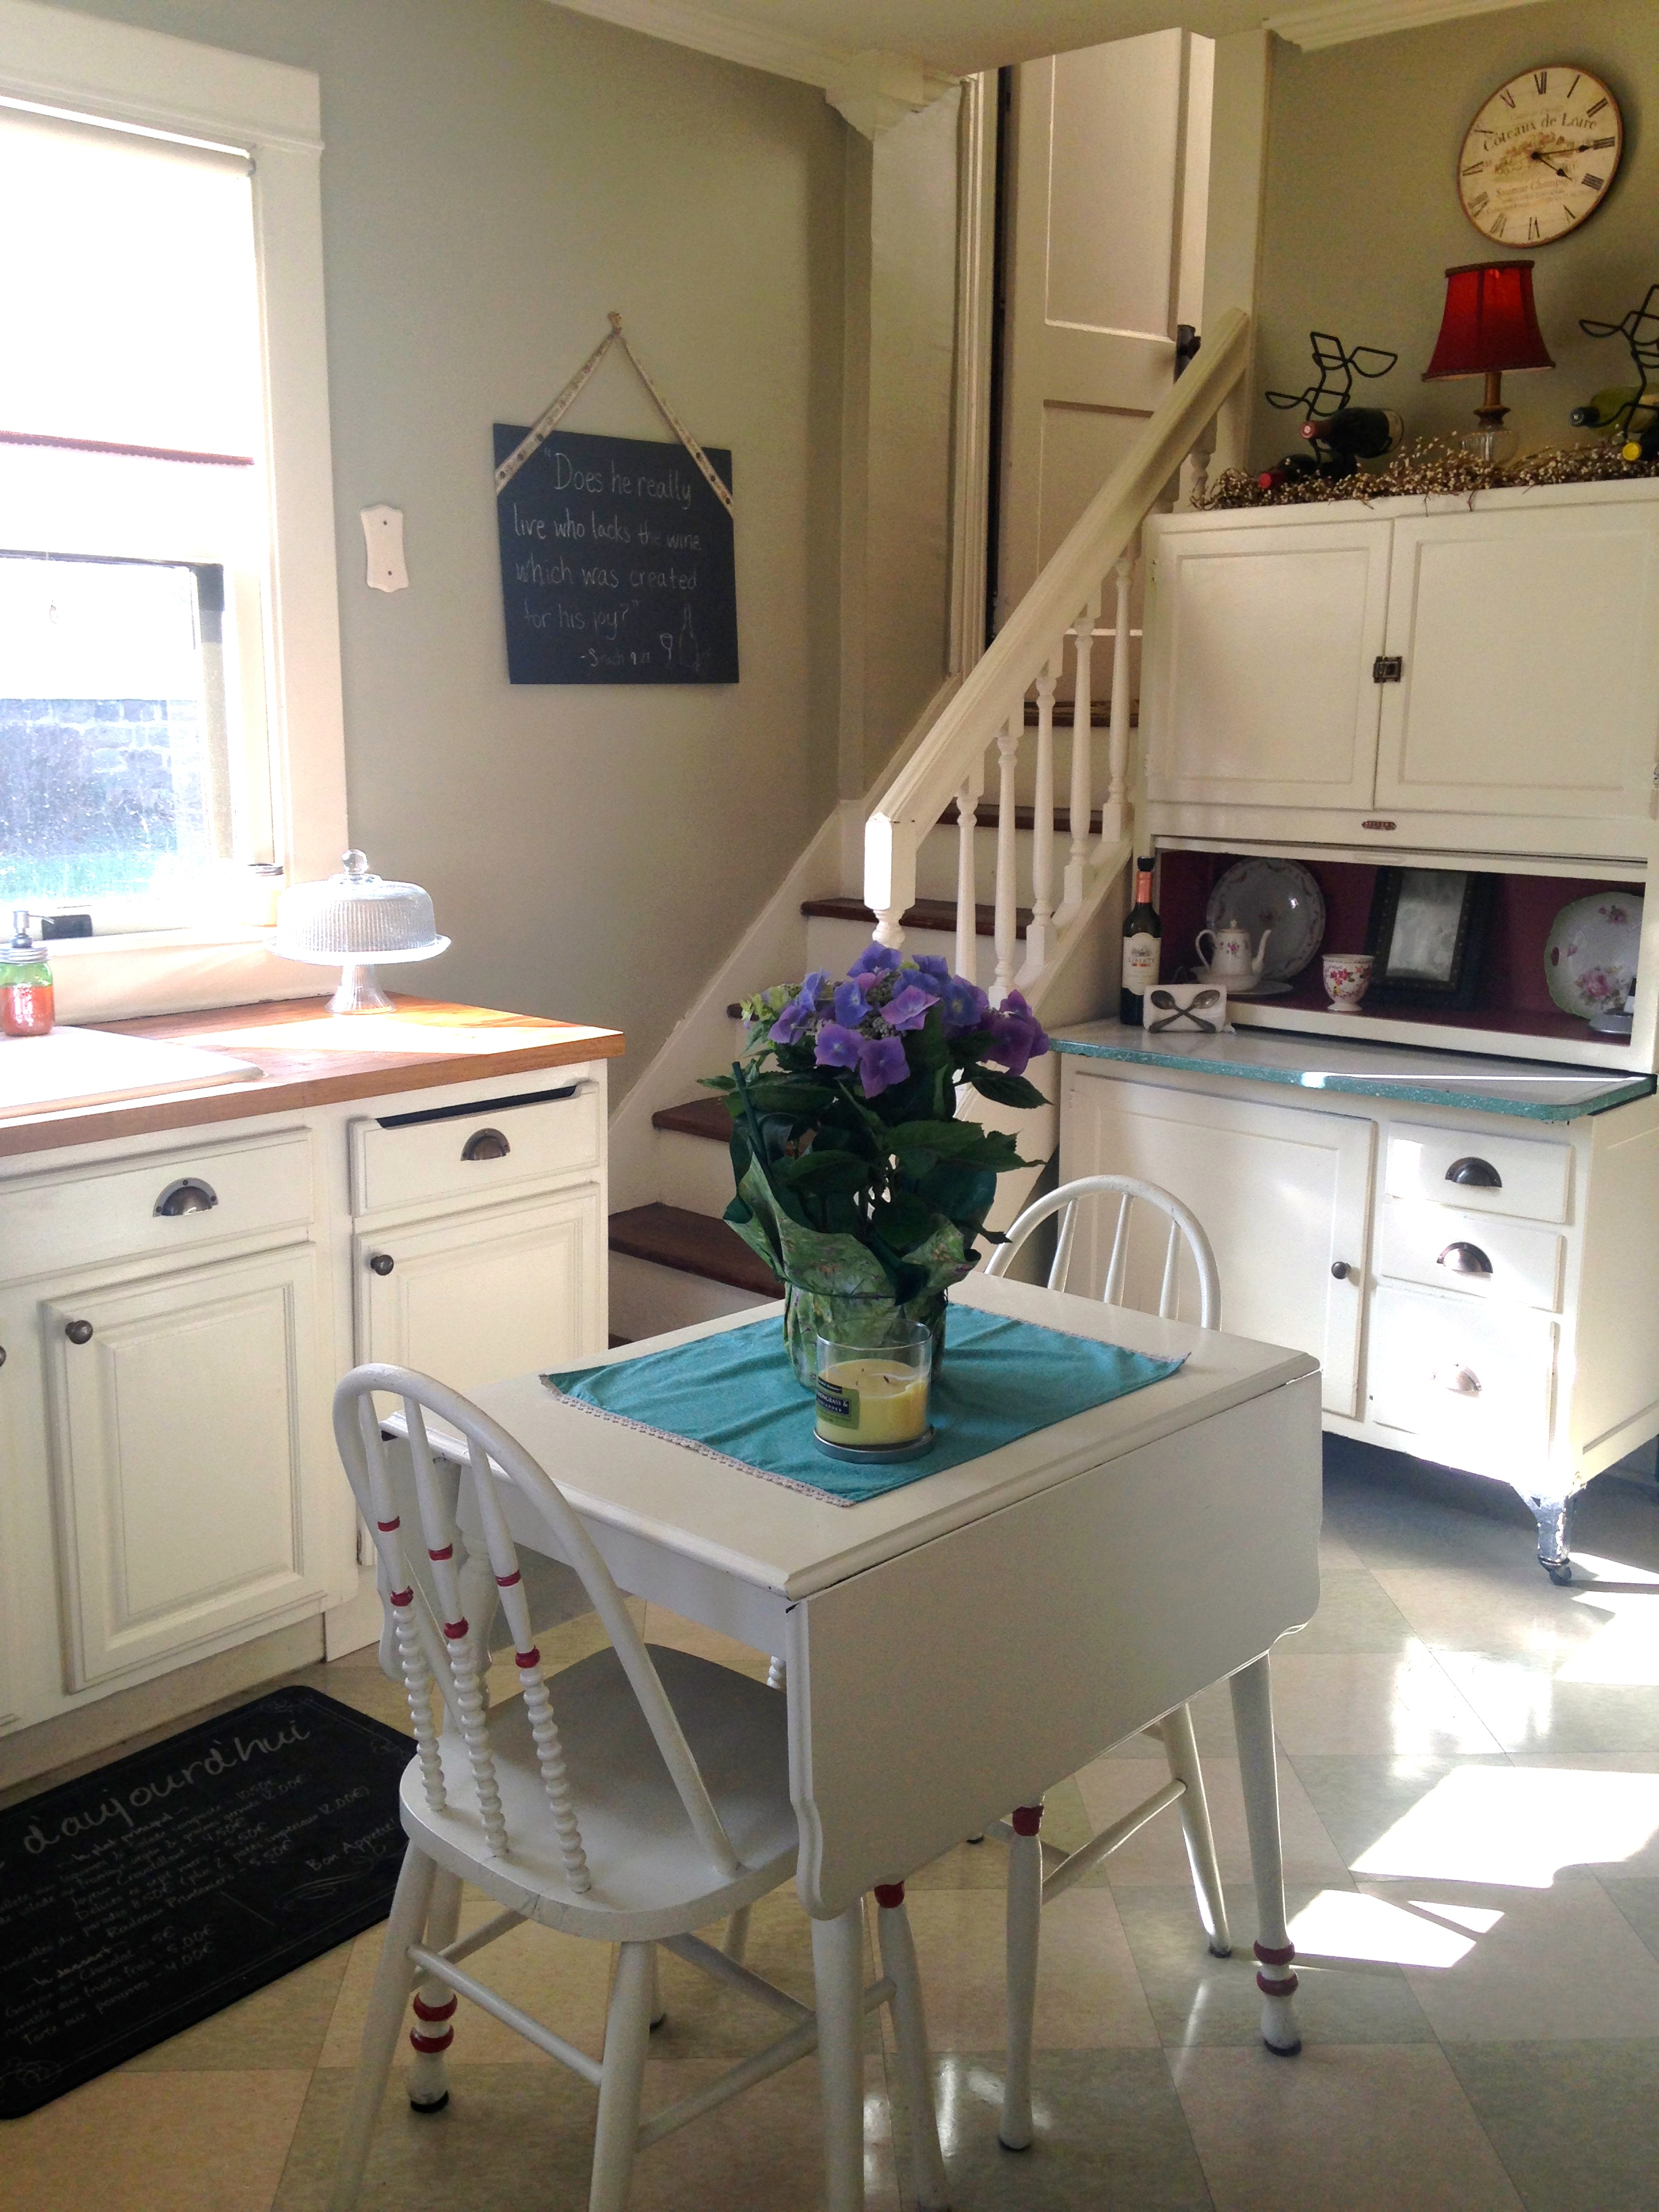 10 things i love about my small kitchen 2348